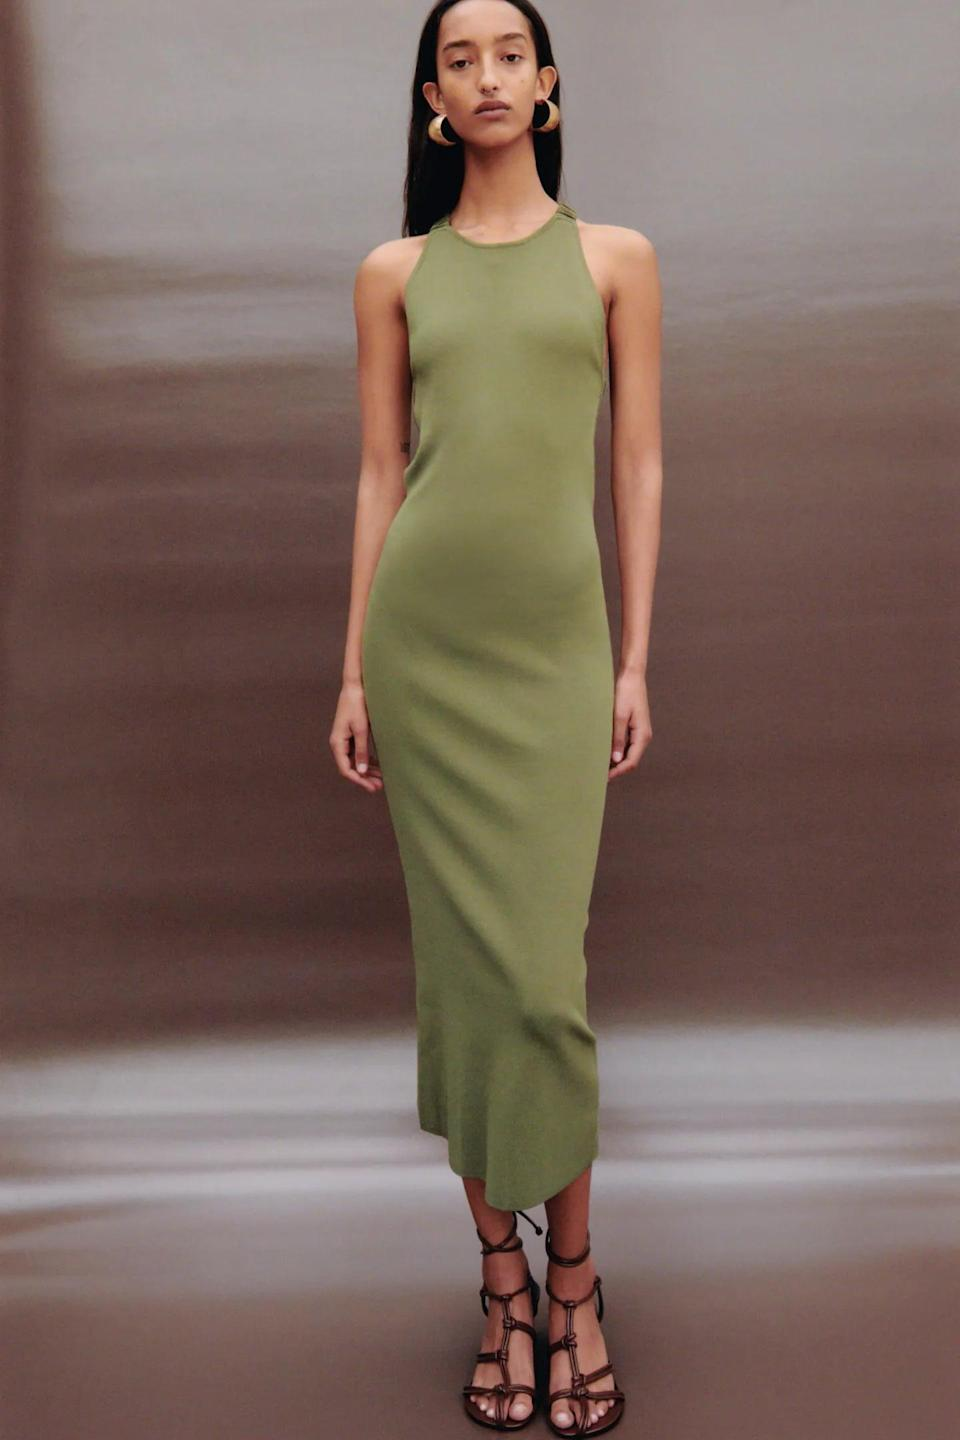 <p>This <span>Zara Knit Midi Dress</span> ($50) is a perfect choice for spring picnics.</p>